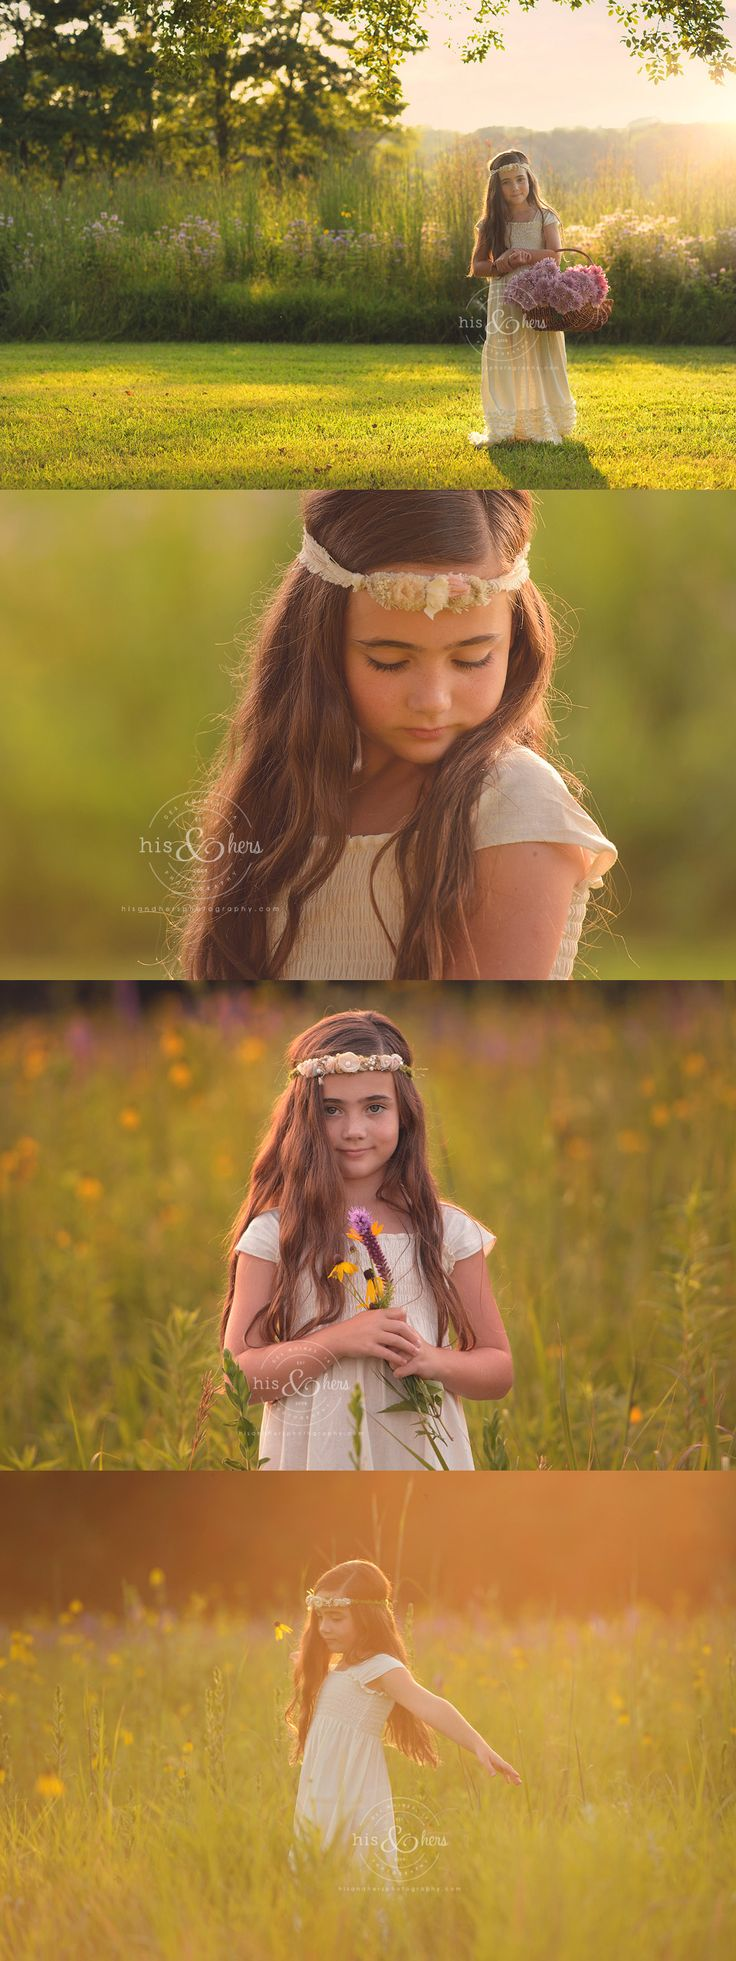 Des Moines, Iowa child photographer, Darcy Milder | His & Hers -  7 year old, Ava